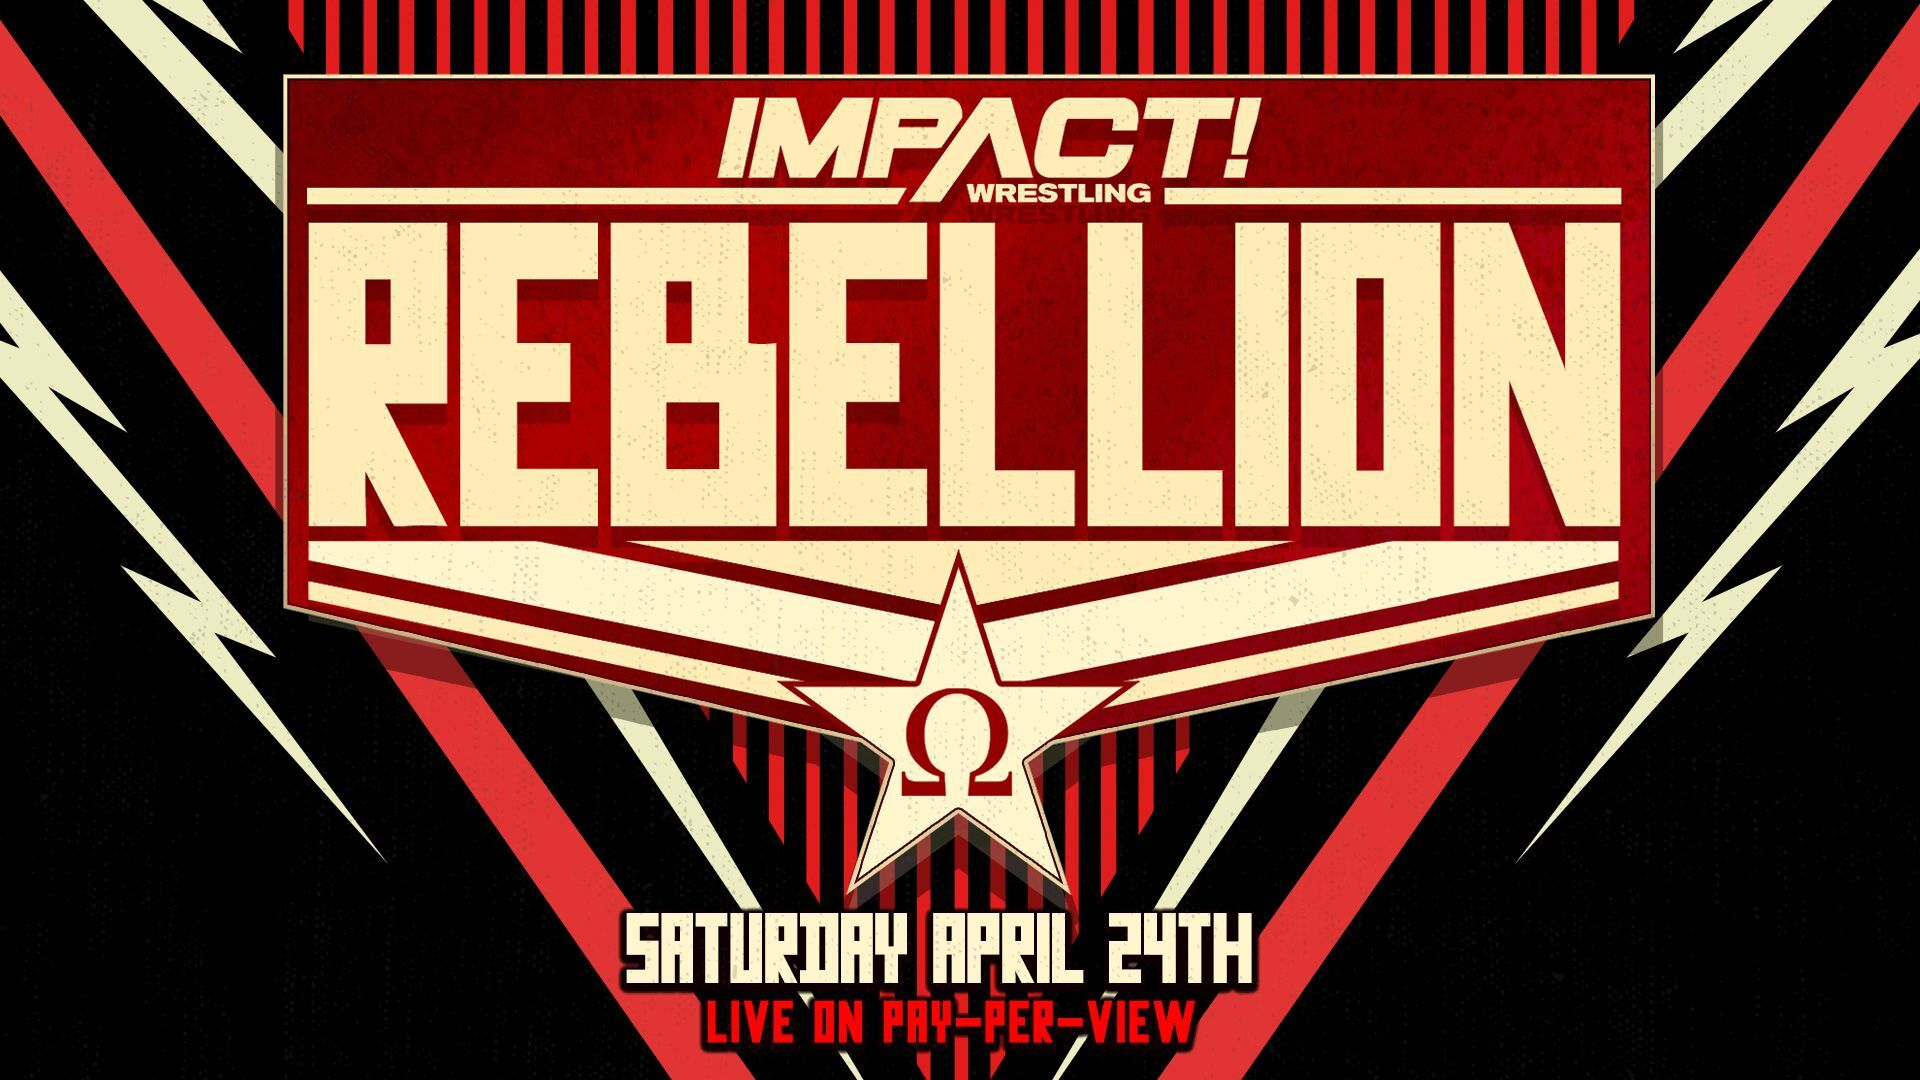 Don't Miss Rebellion LIVE April 24th on Pay-Per-View – IMPACT Wrestling